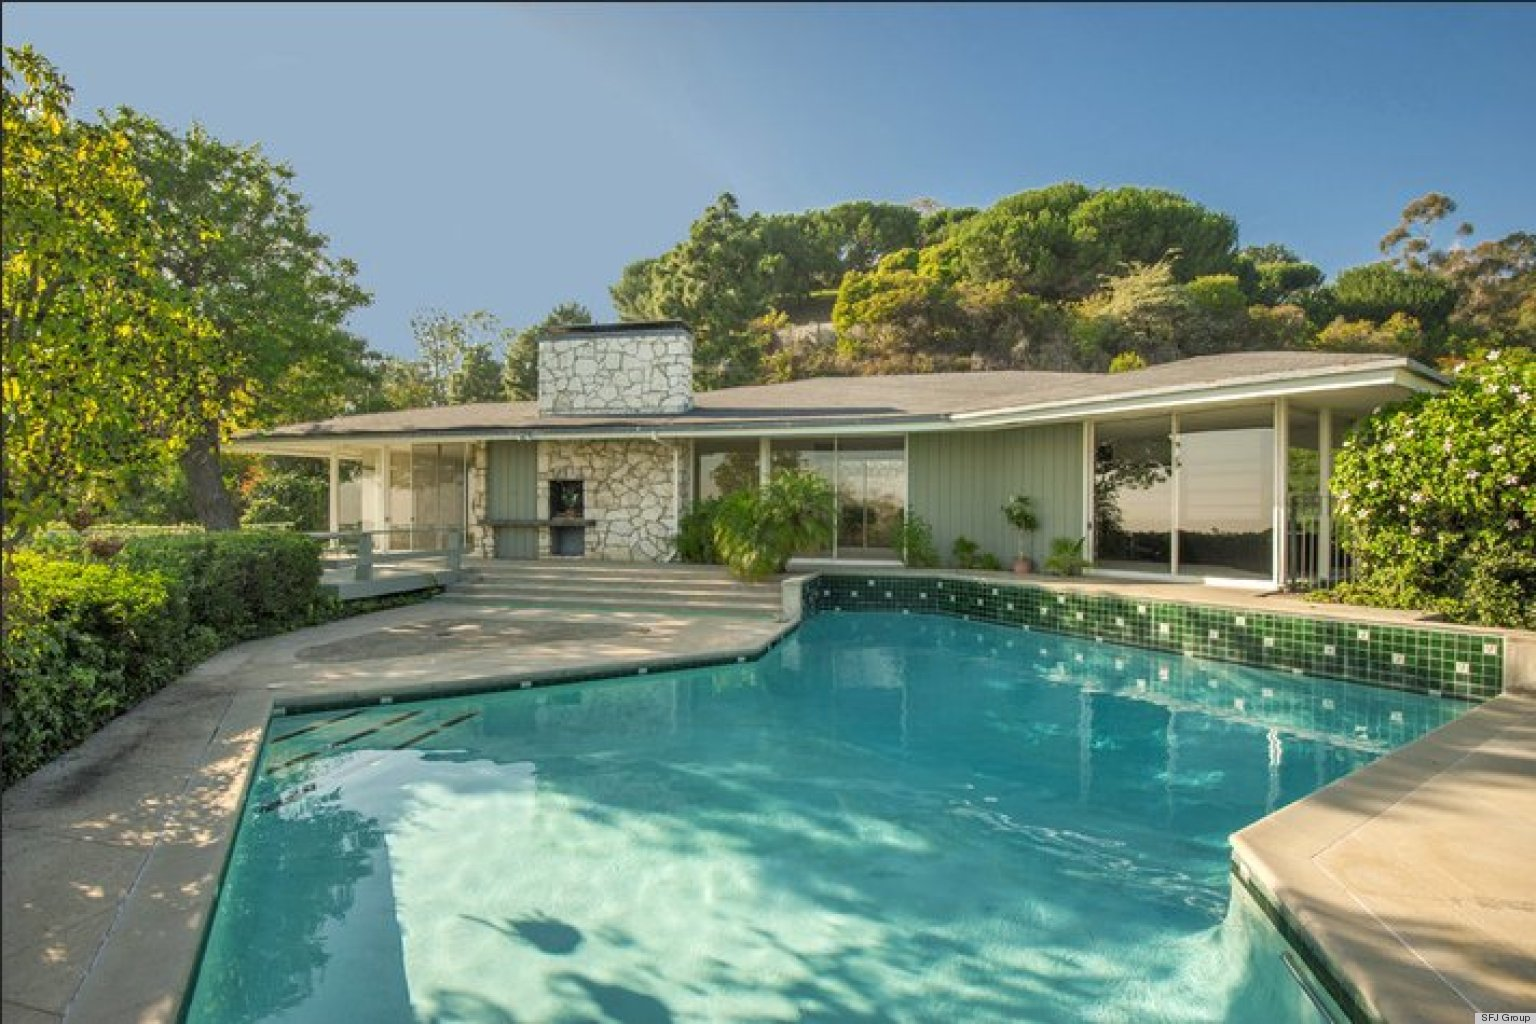 Ronald reagan 39 s former pacific palisades los angeles home for Houses for sale in pacific palisades